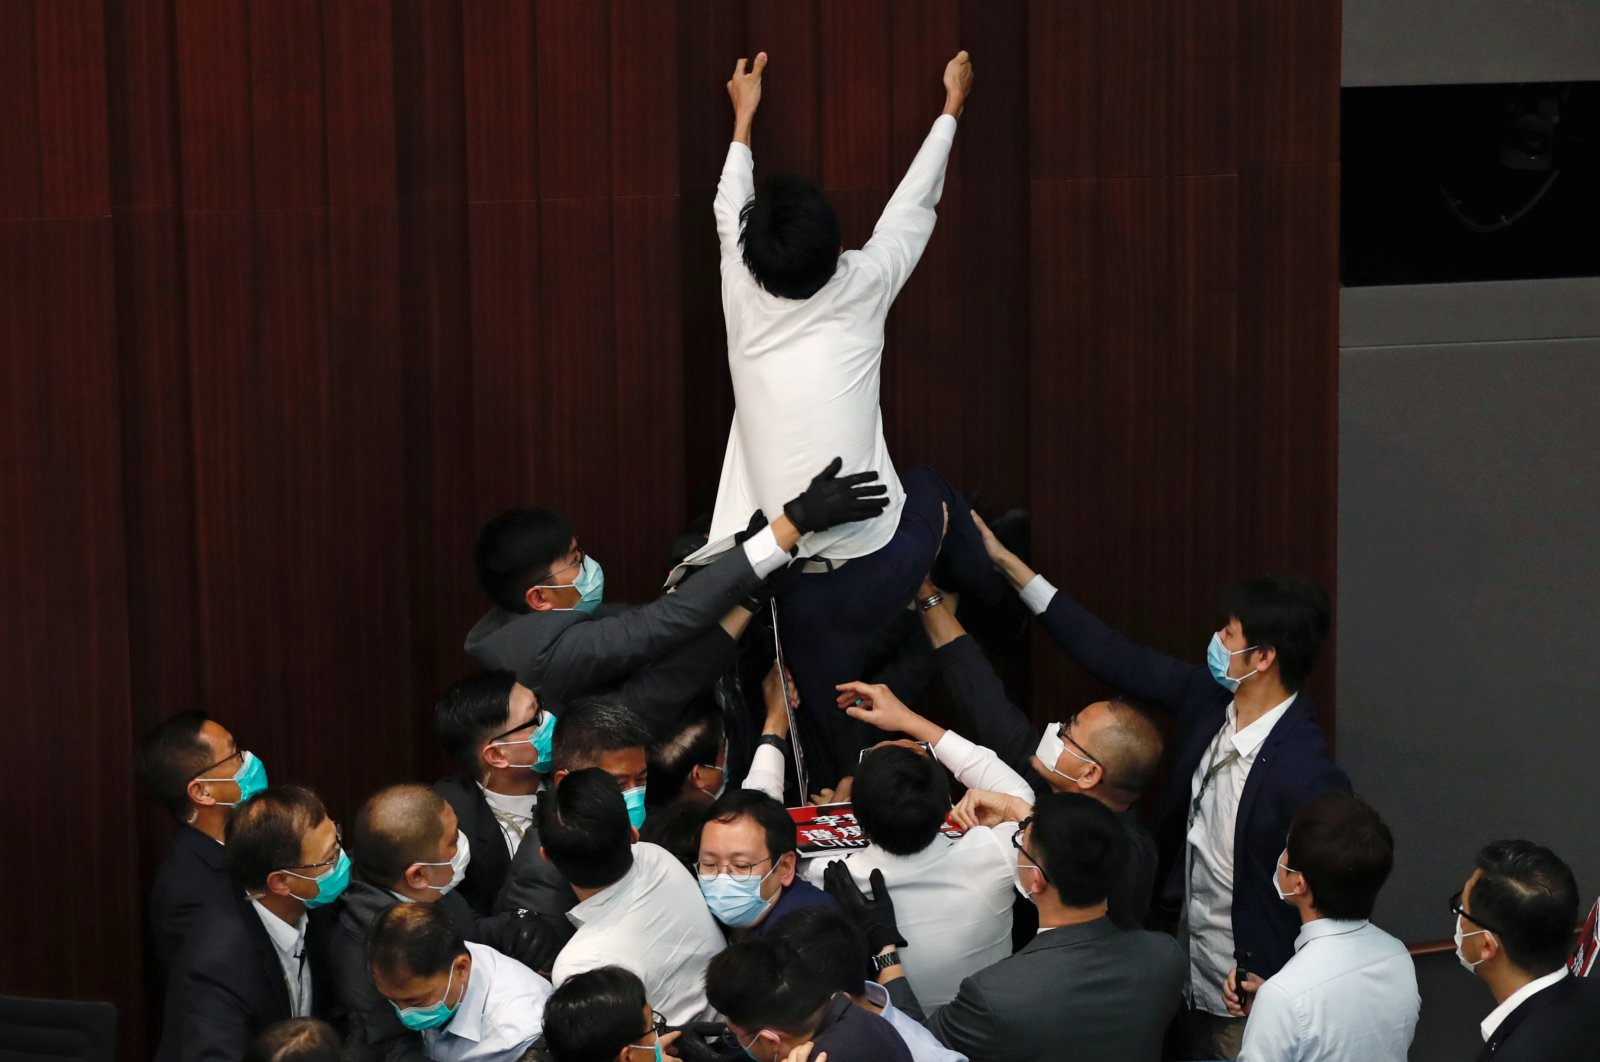 Pan-democratic legislator Eddie Chu Hoi-dick scuffles with security and pro-China legislators during Legislative Council's House Committee meeting, in Hong Kong, China, May 8, 2020. (Reuters Photo)